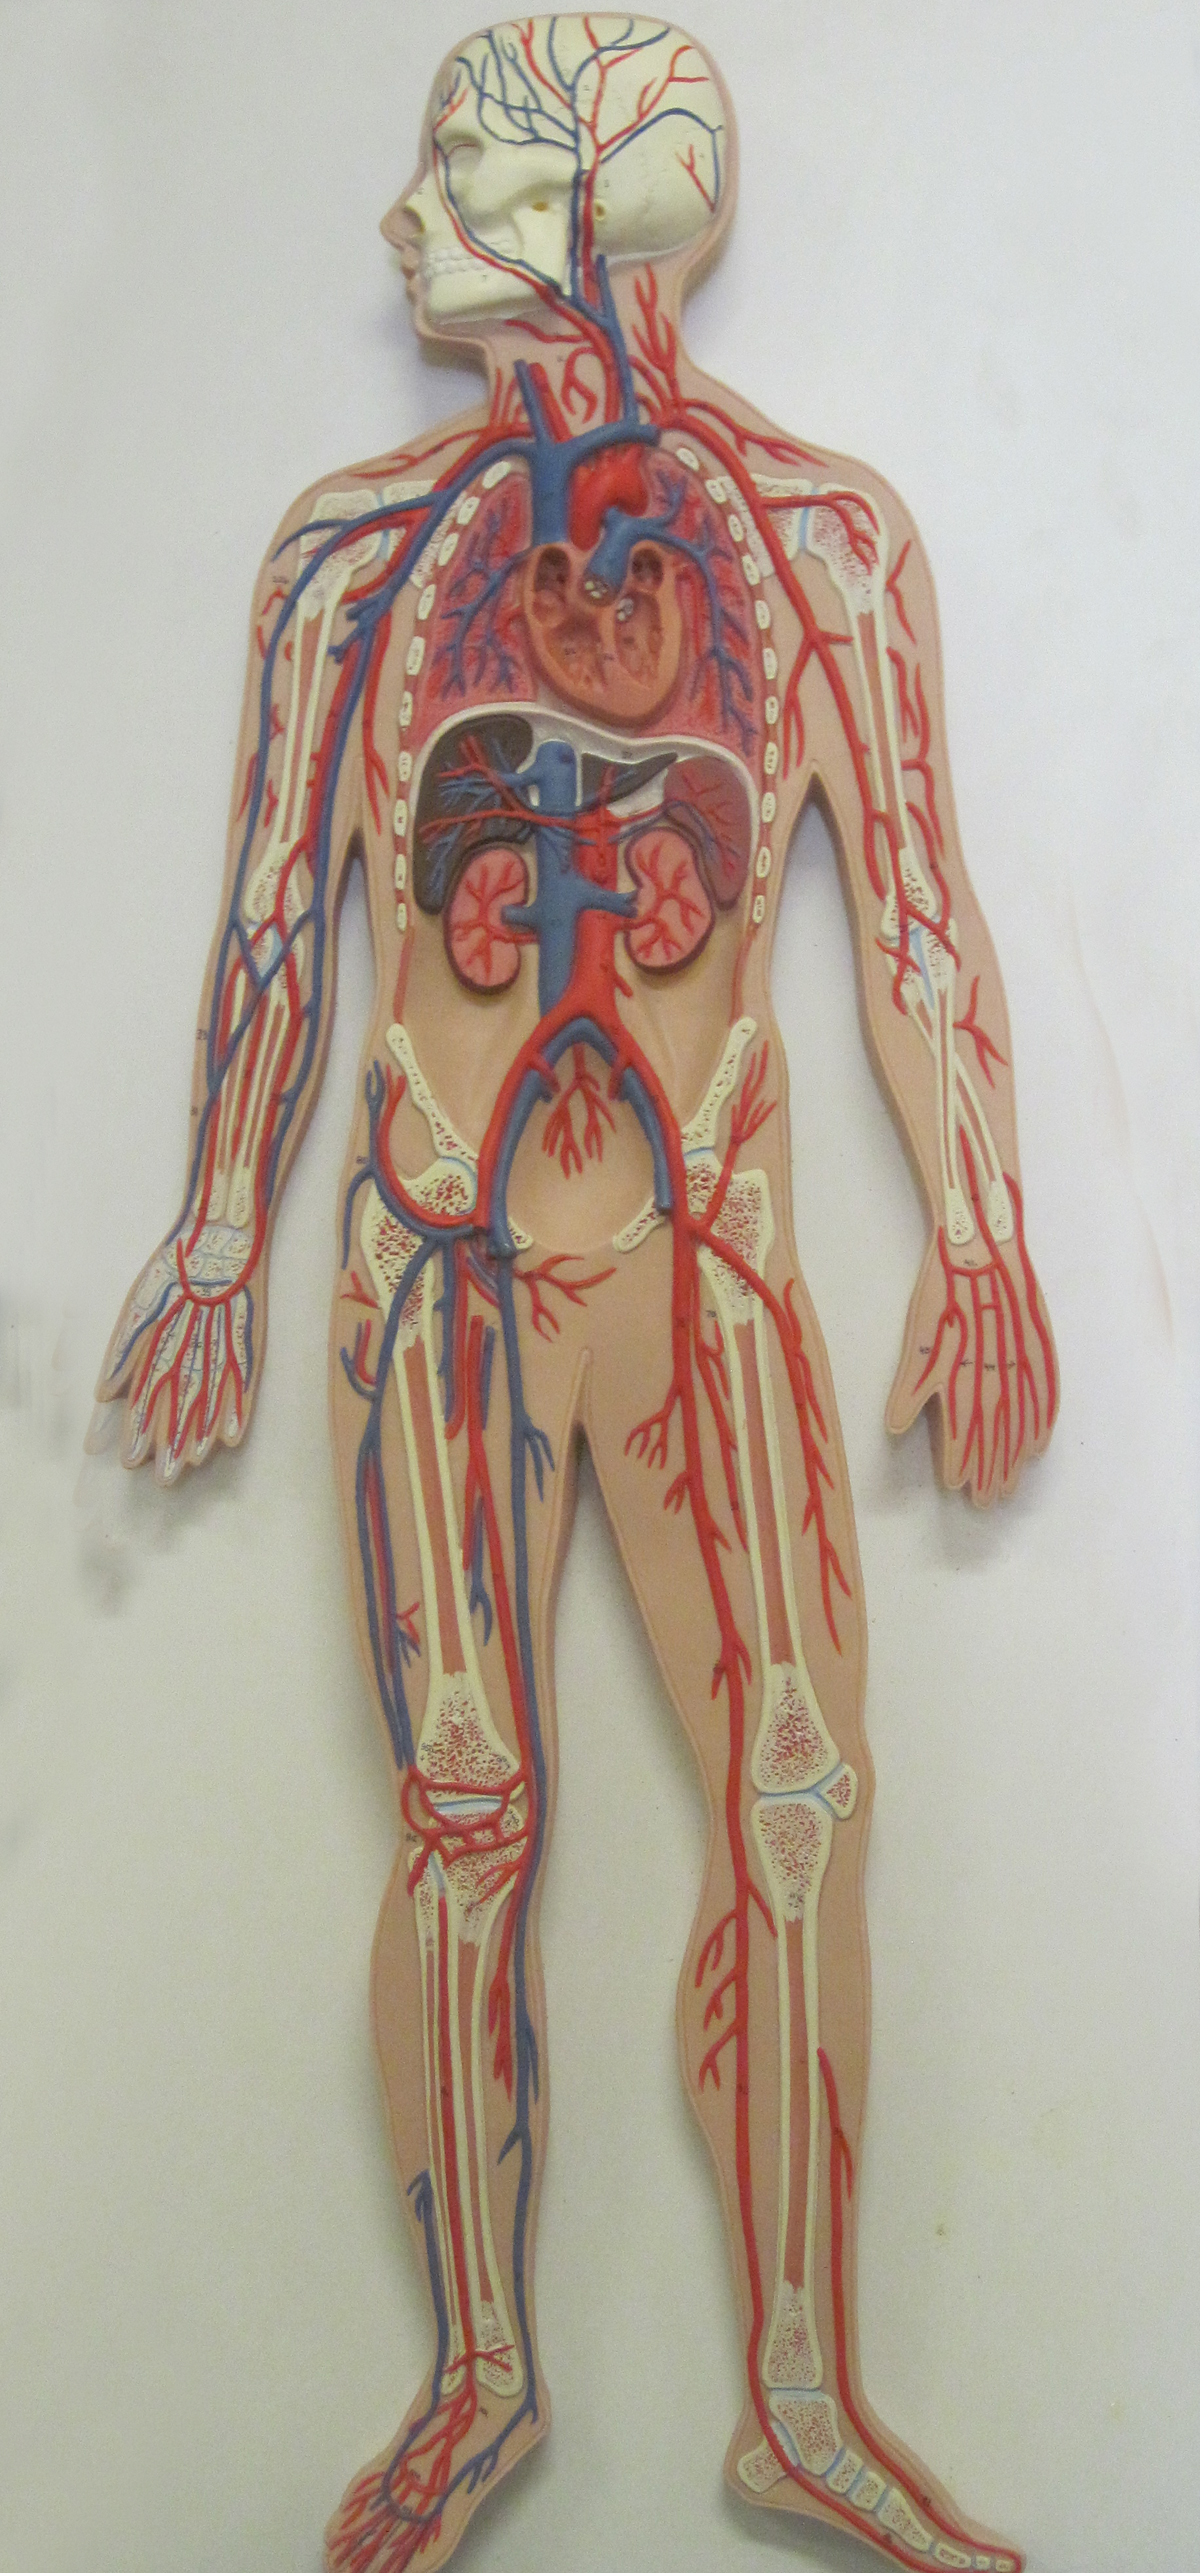 Circulatory System Model | Central Coast Science Project ...